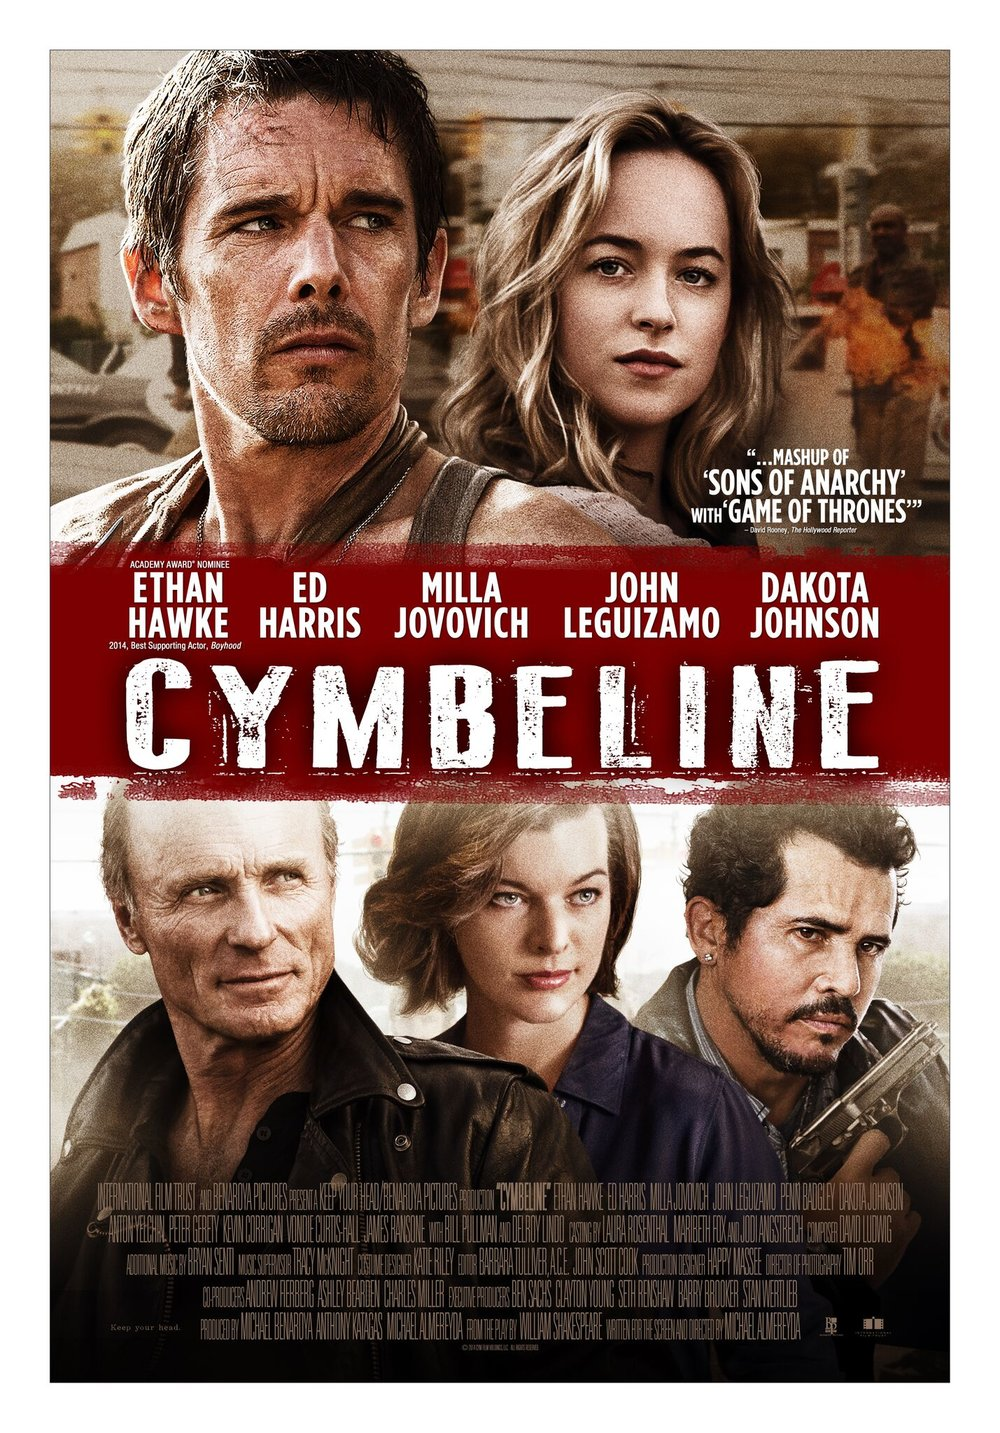 CYMBELINE_Poster_Final_vINTL_preview.jpeg